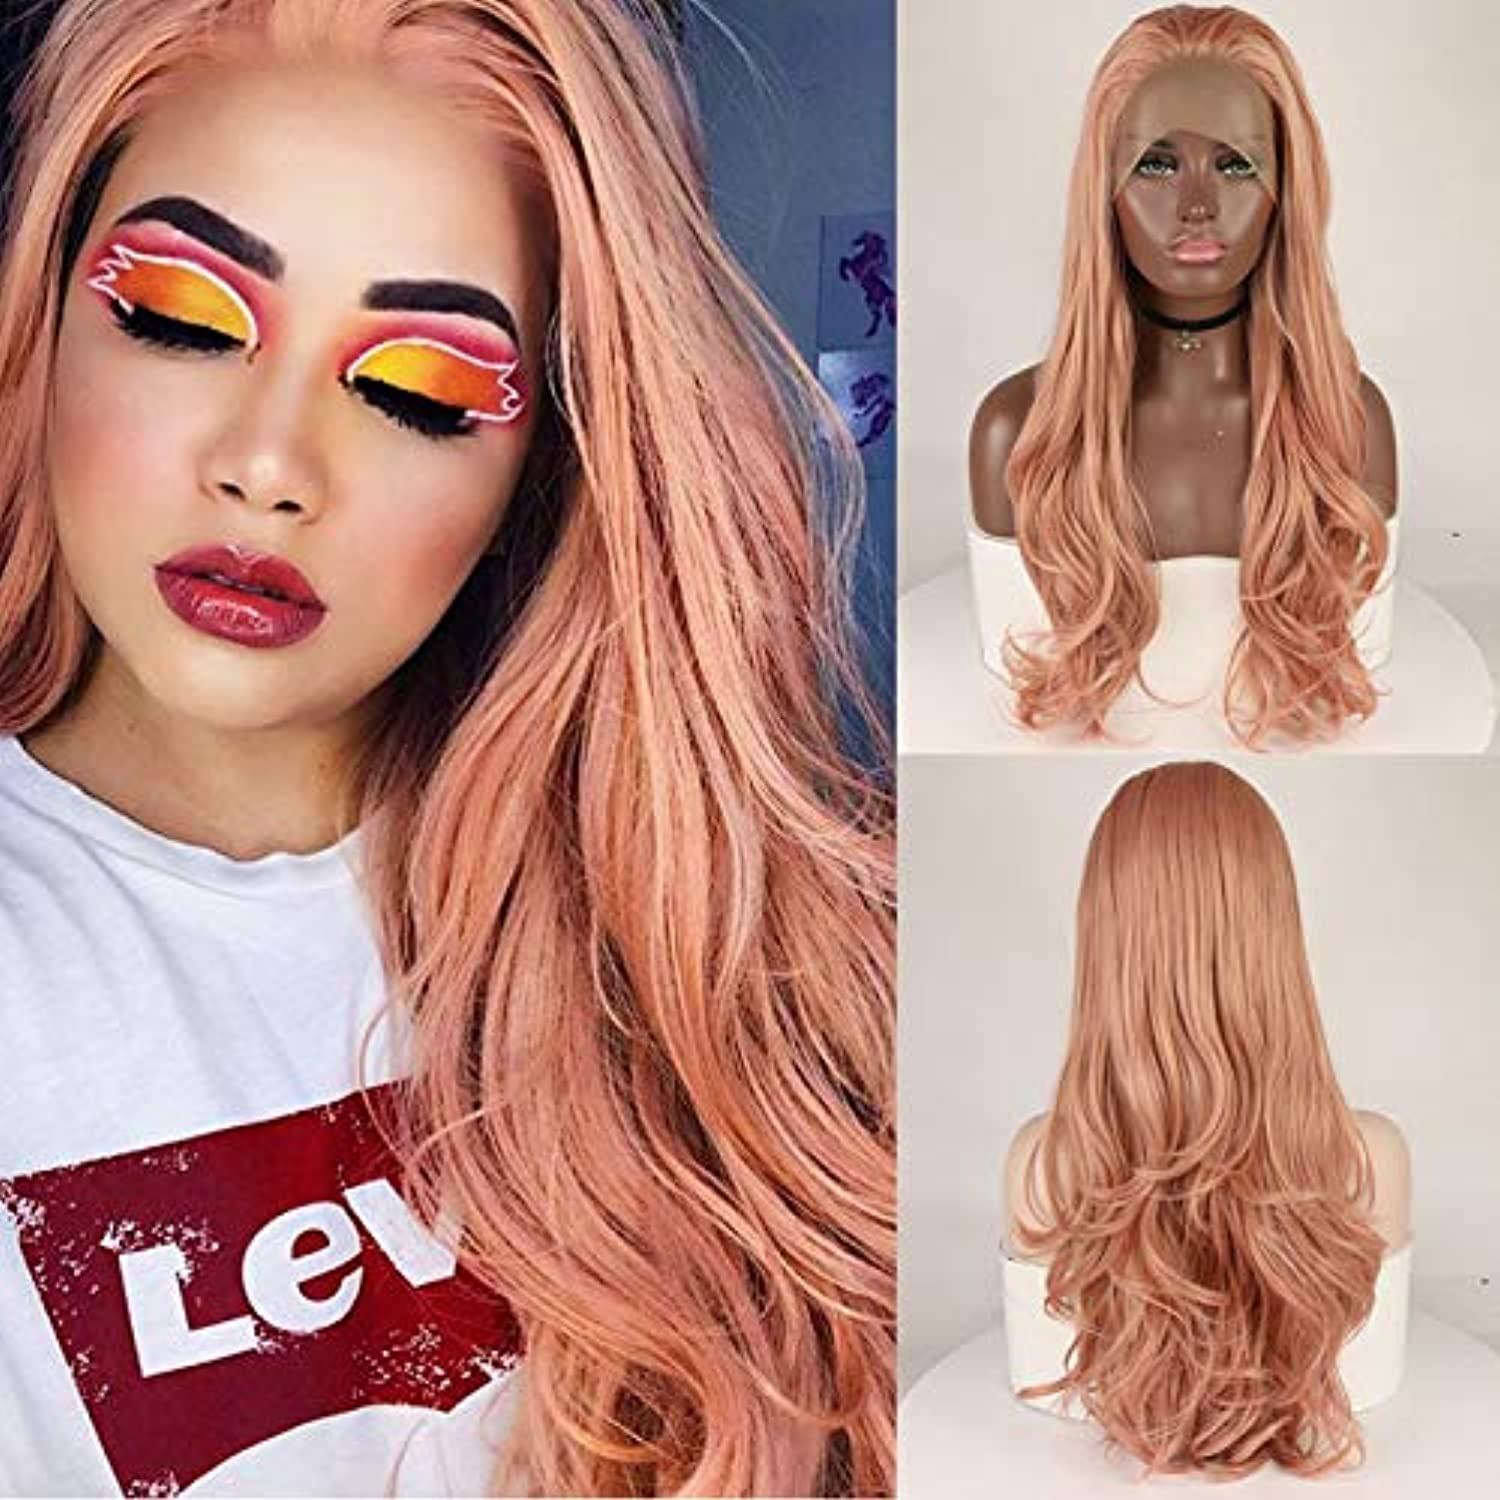 Fantasy Synthetic Lace Front Wigs pink gold Beauty Long Wavy Peach Pink High Temperature Fiber Lace Front Wigs For Women